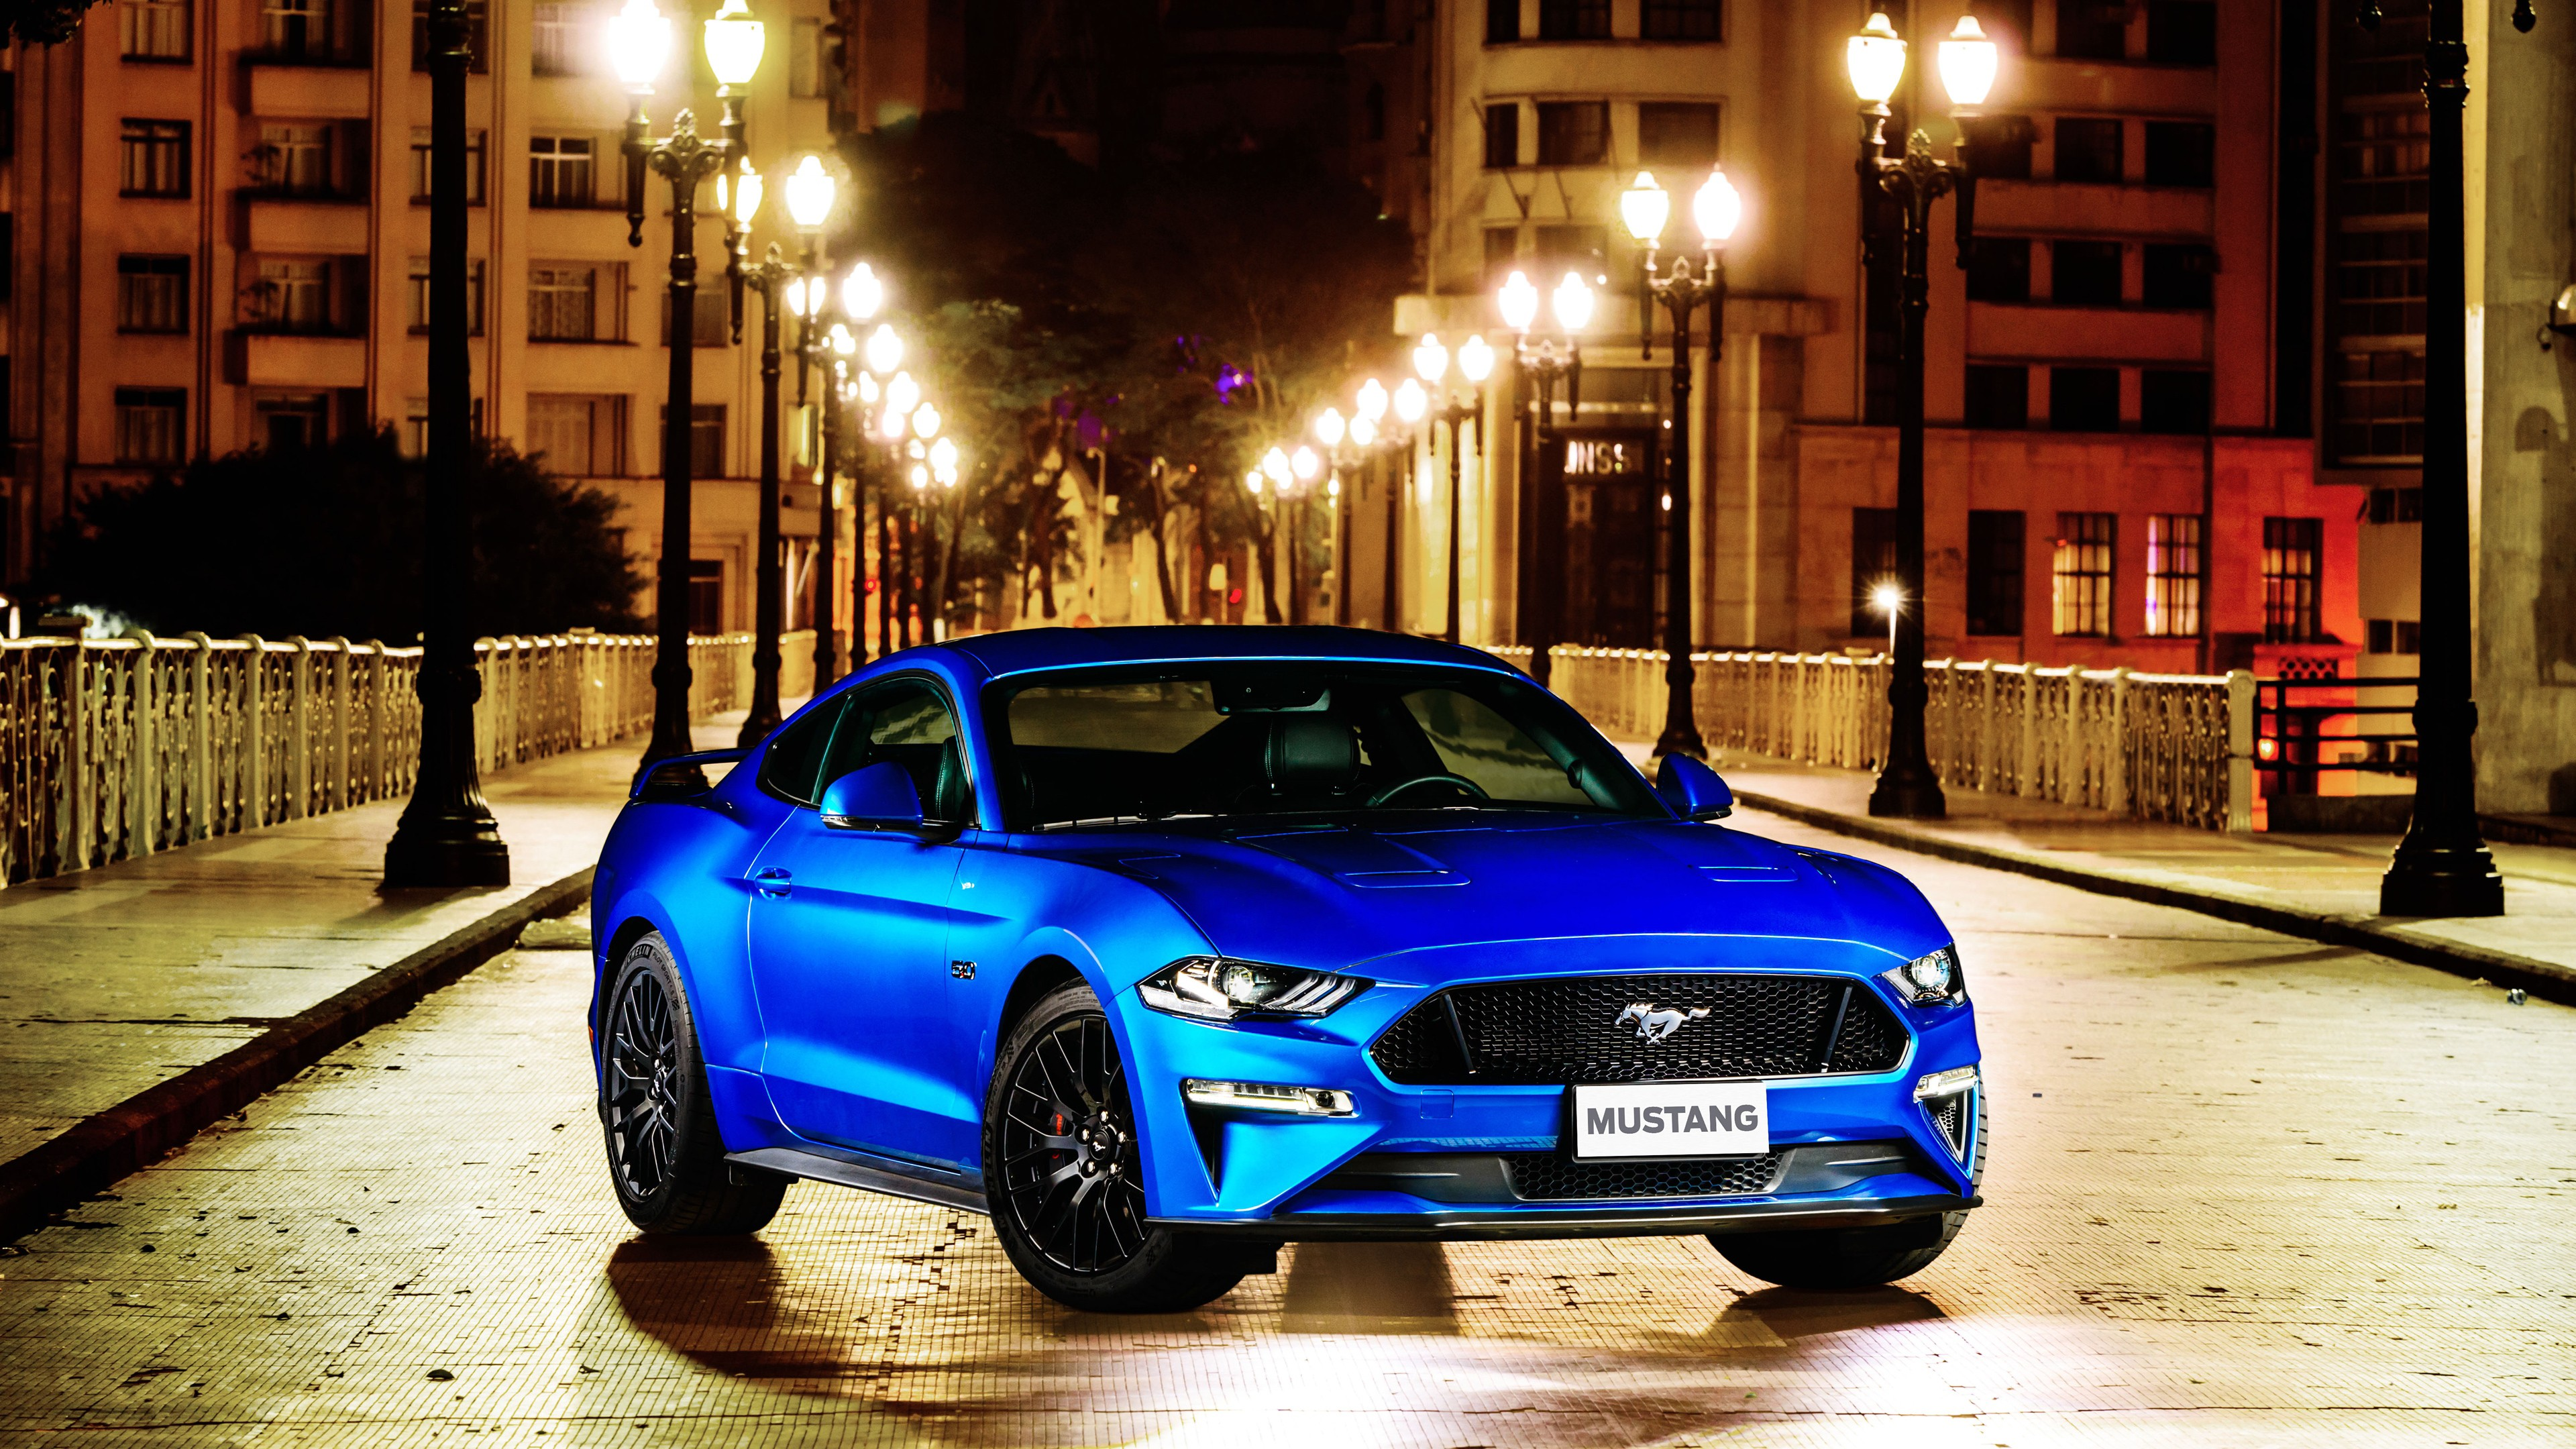 Wallpaper Ford Mustang 2018 Hd Automotive Cars 5863: 2018 Ford Mustang GT Fastback 4K 8 Wallpaper